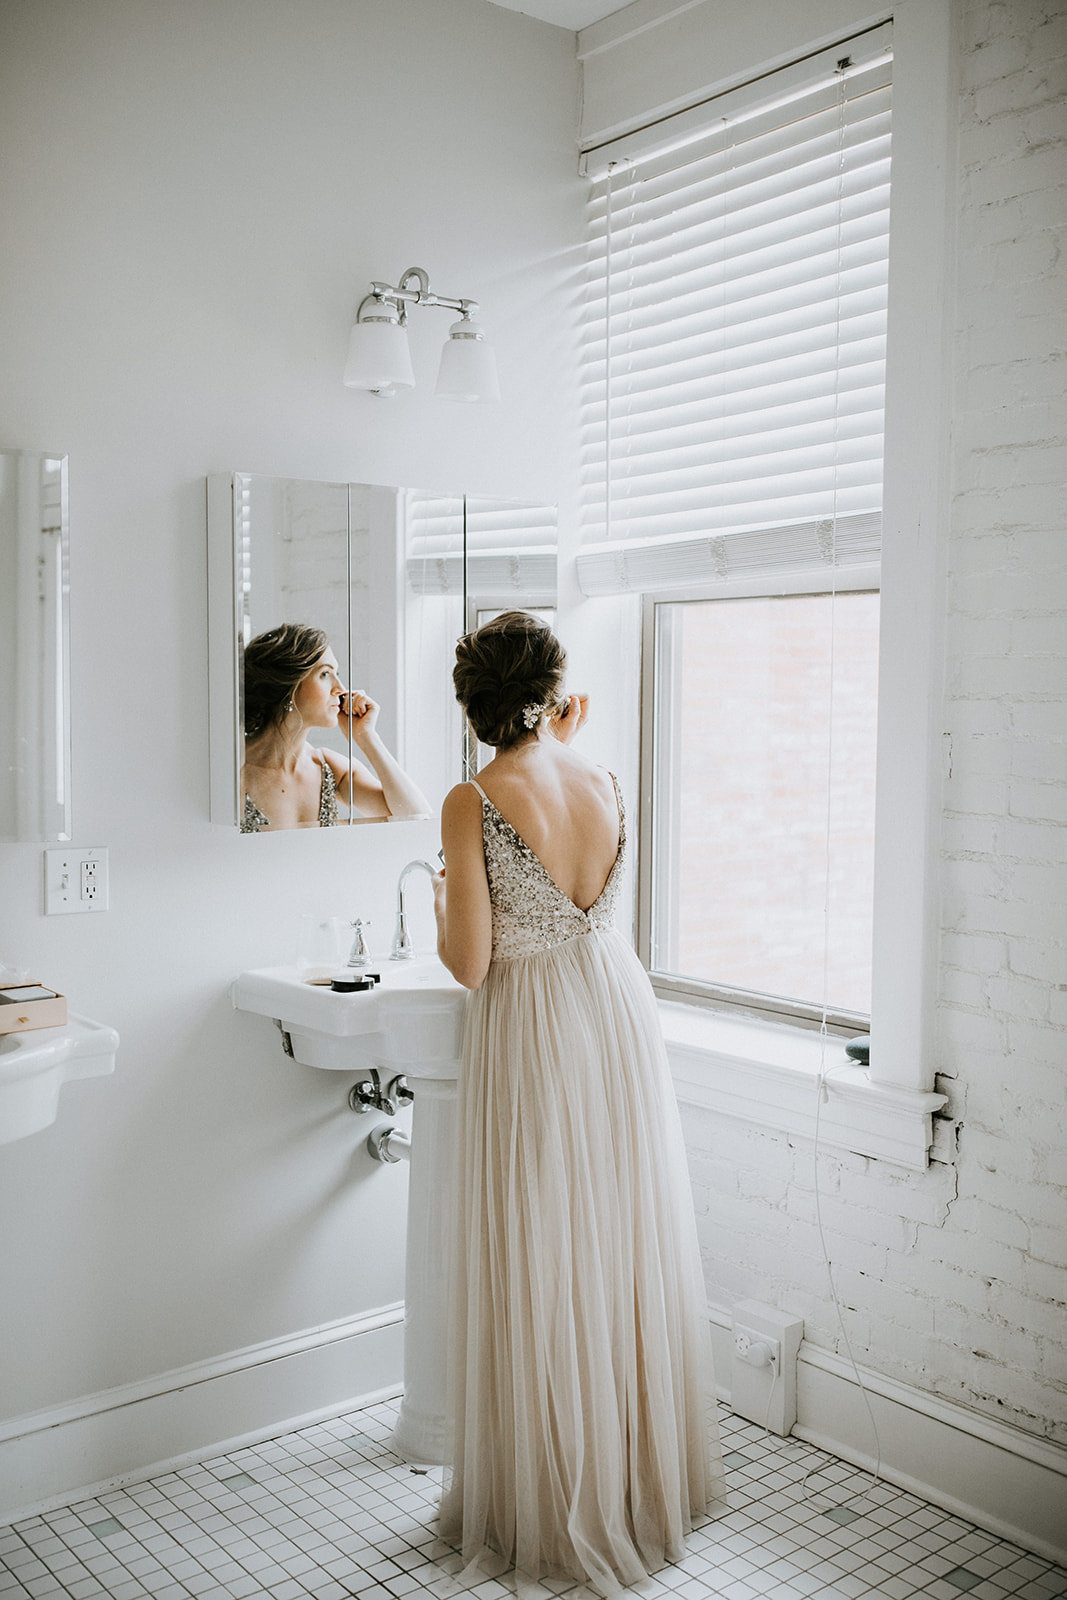 A woman looks out a window in front of a bathroom mirror.